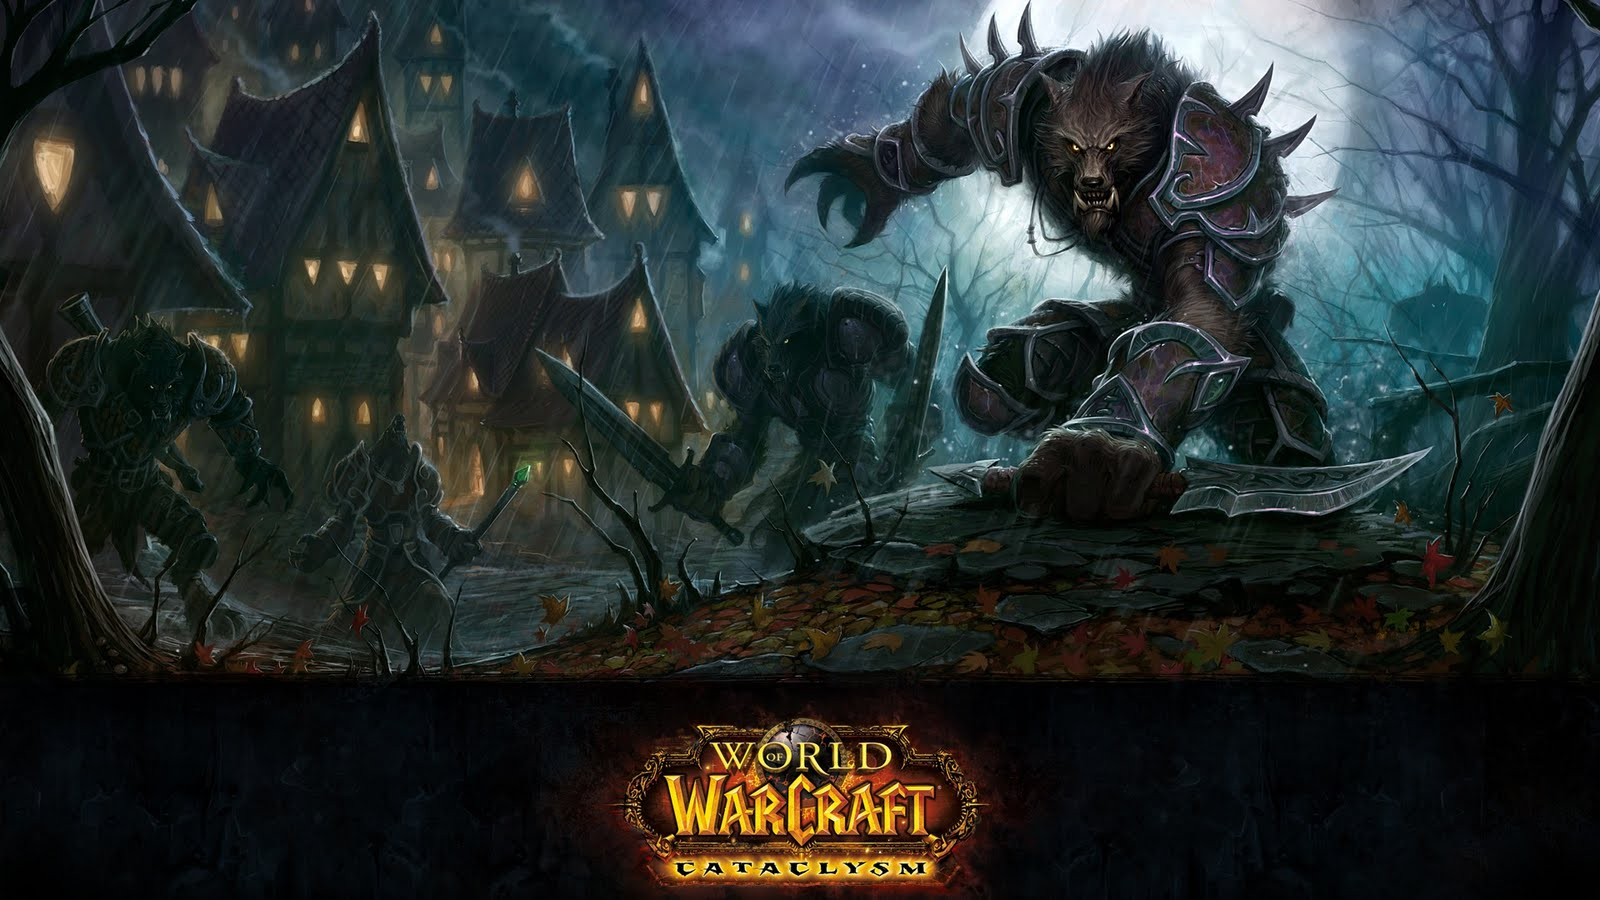 http://2.bp.blogspot.com/-jNeyiHQ2I3g/TcmoCURBlHI/AAAAAAAAAFE/CT7yfXbOYqg/s1600/World_of_Warcraft_Cataclysm_1920x1080-HDTV-1080p.jpg